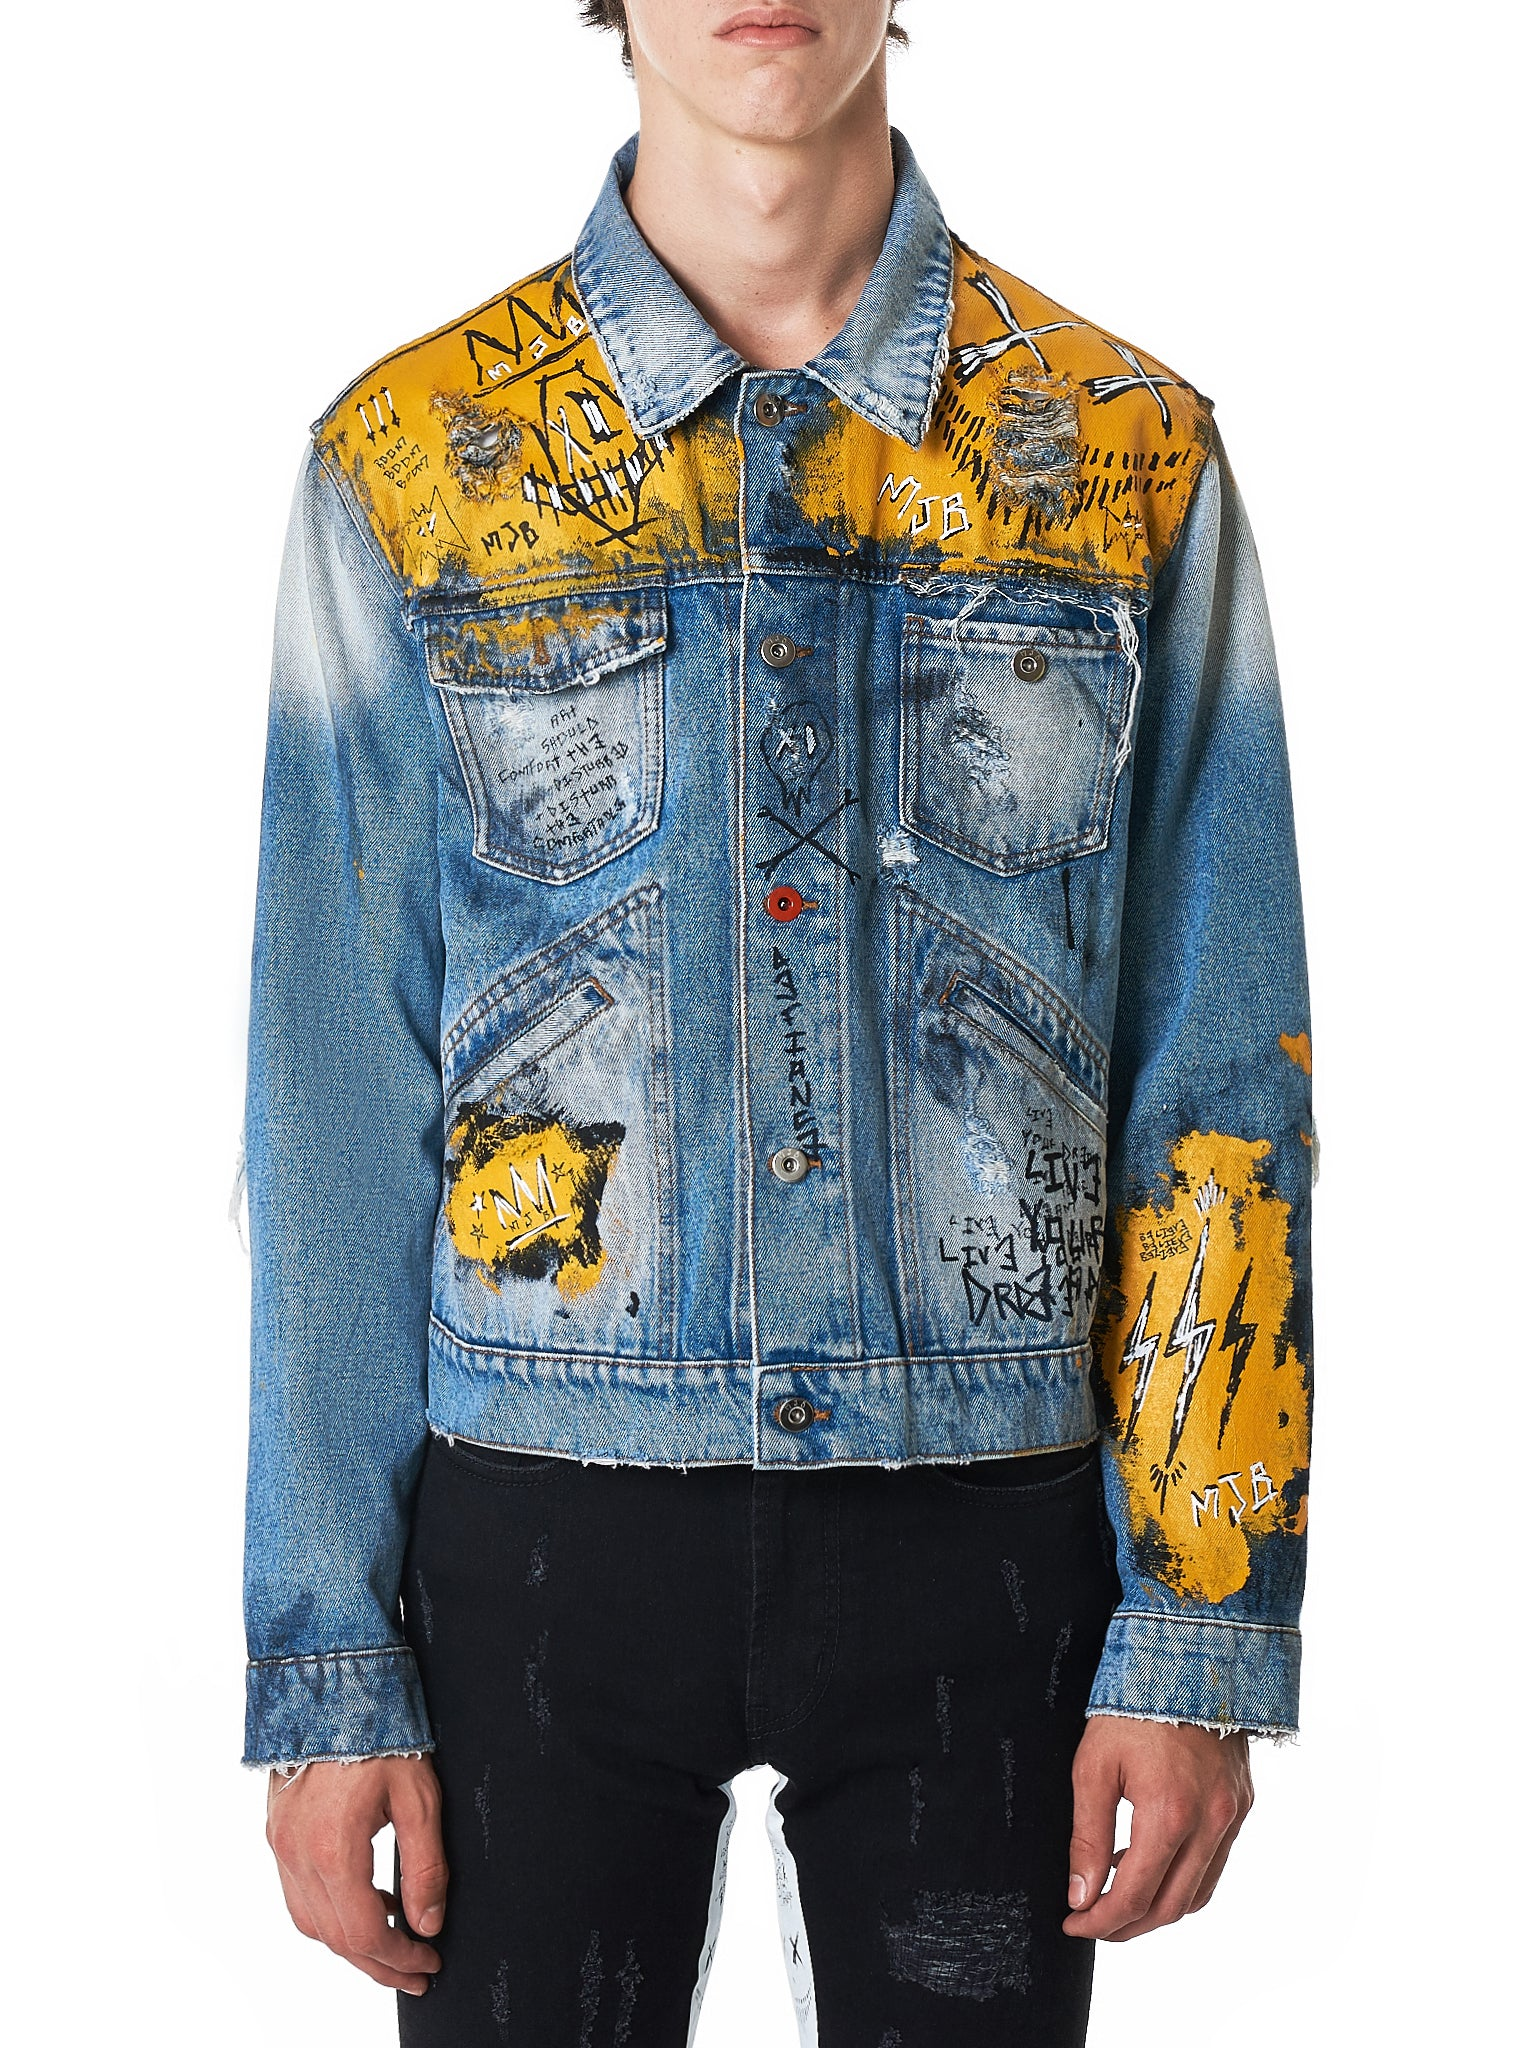 MJB (Marc Jacques Burton) Denim Jacket - Hlorenzo Front